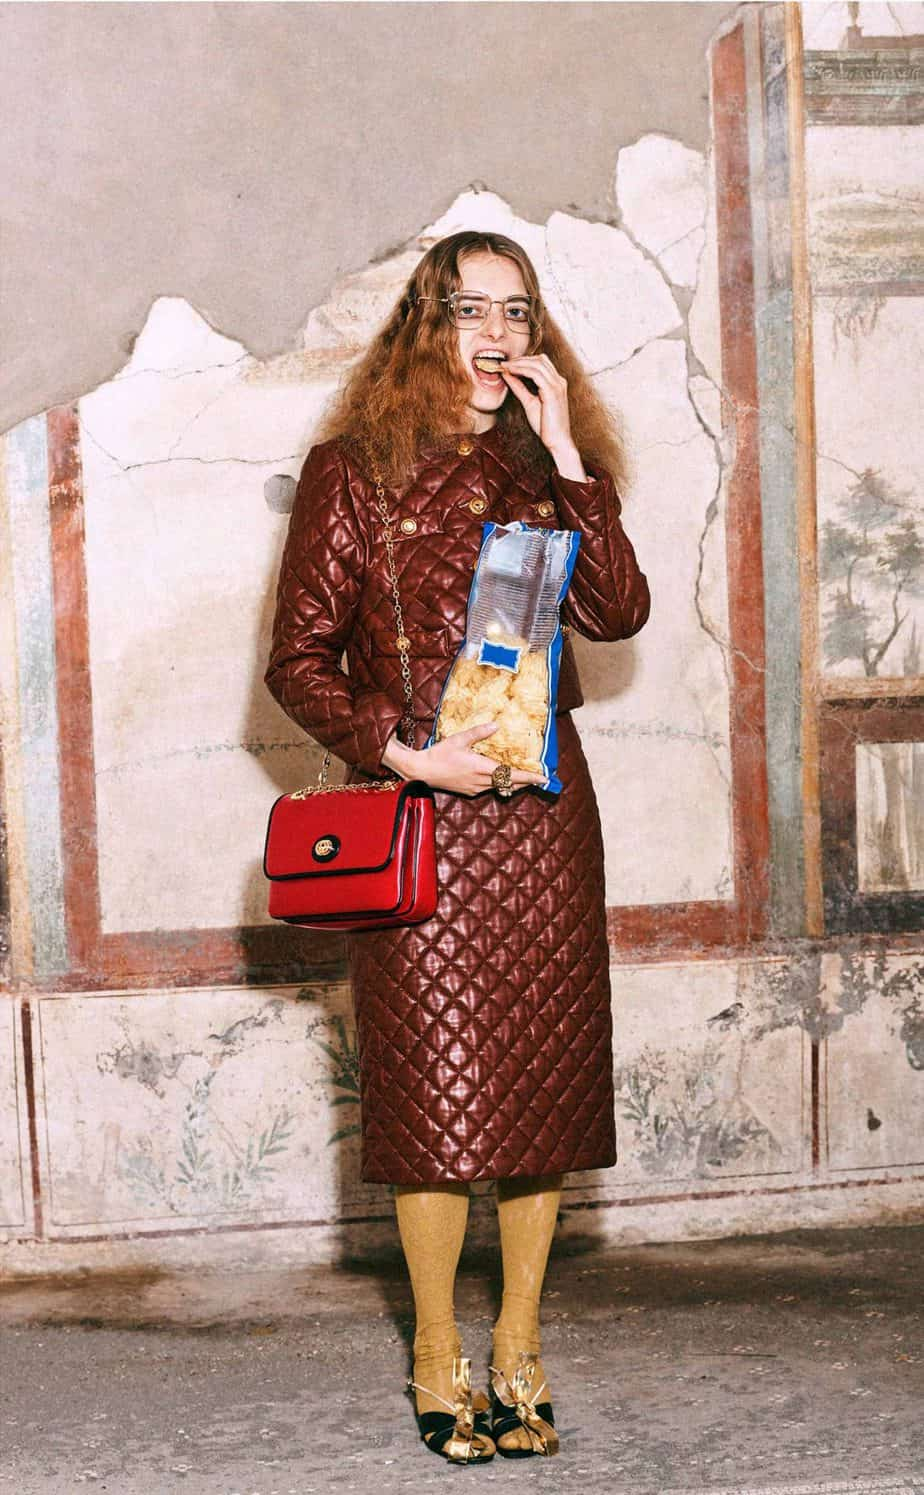 GUCCI, FALL 2019. WOMEN'S FASHION, Photographer Harmony Korine, Art Director, Christopher Simmonds - 46